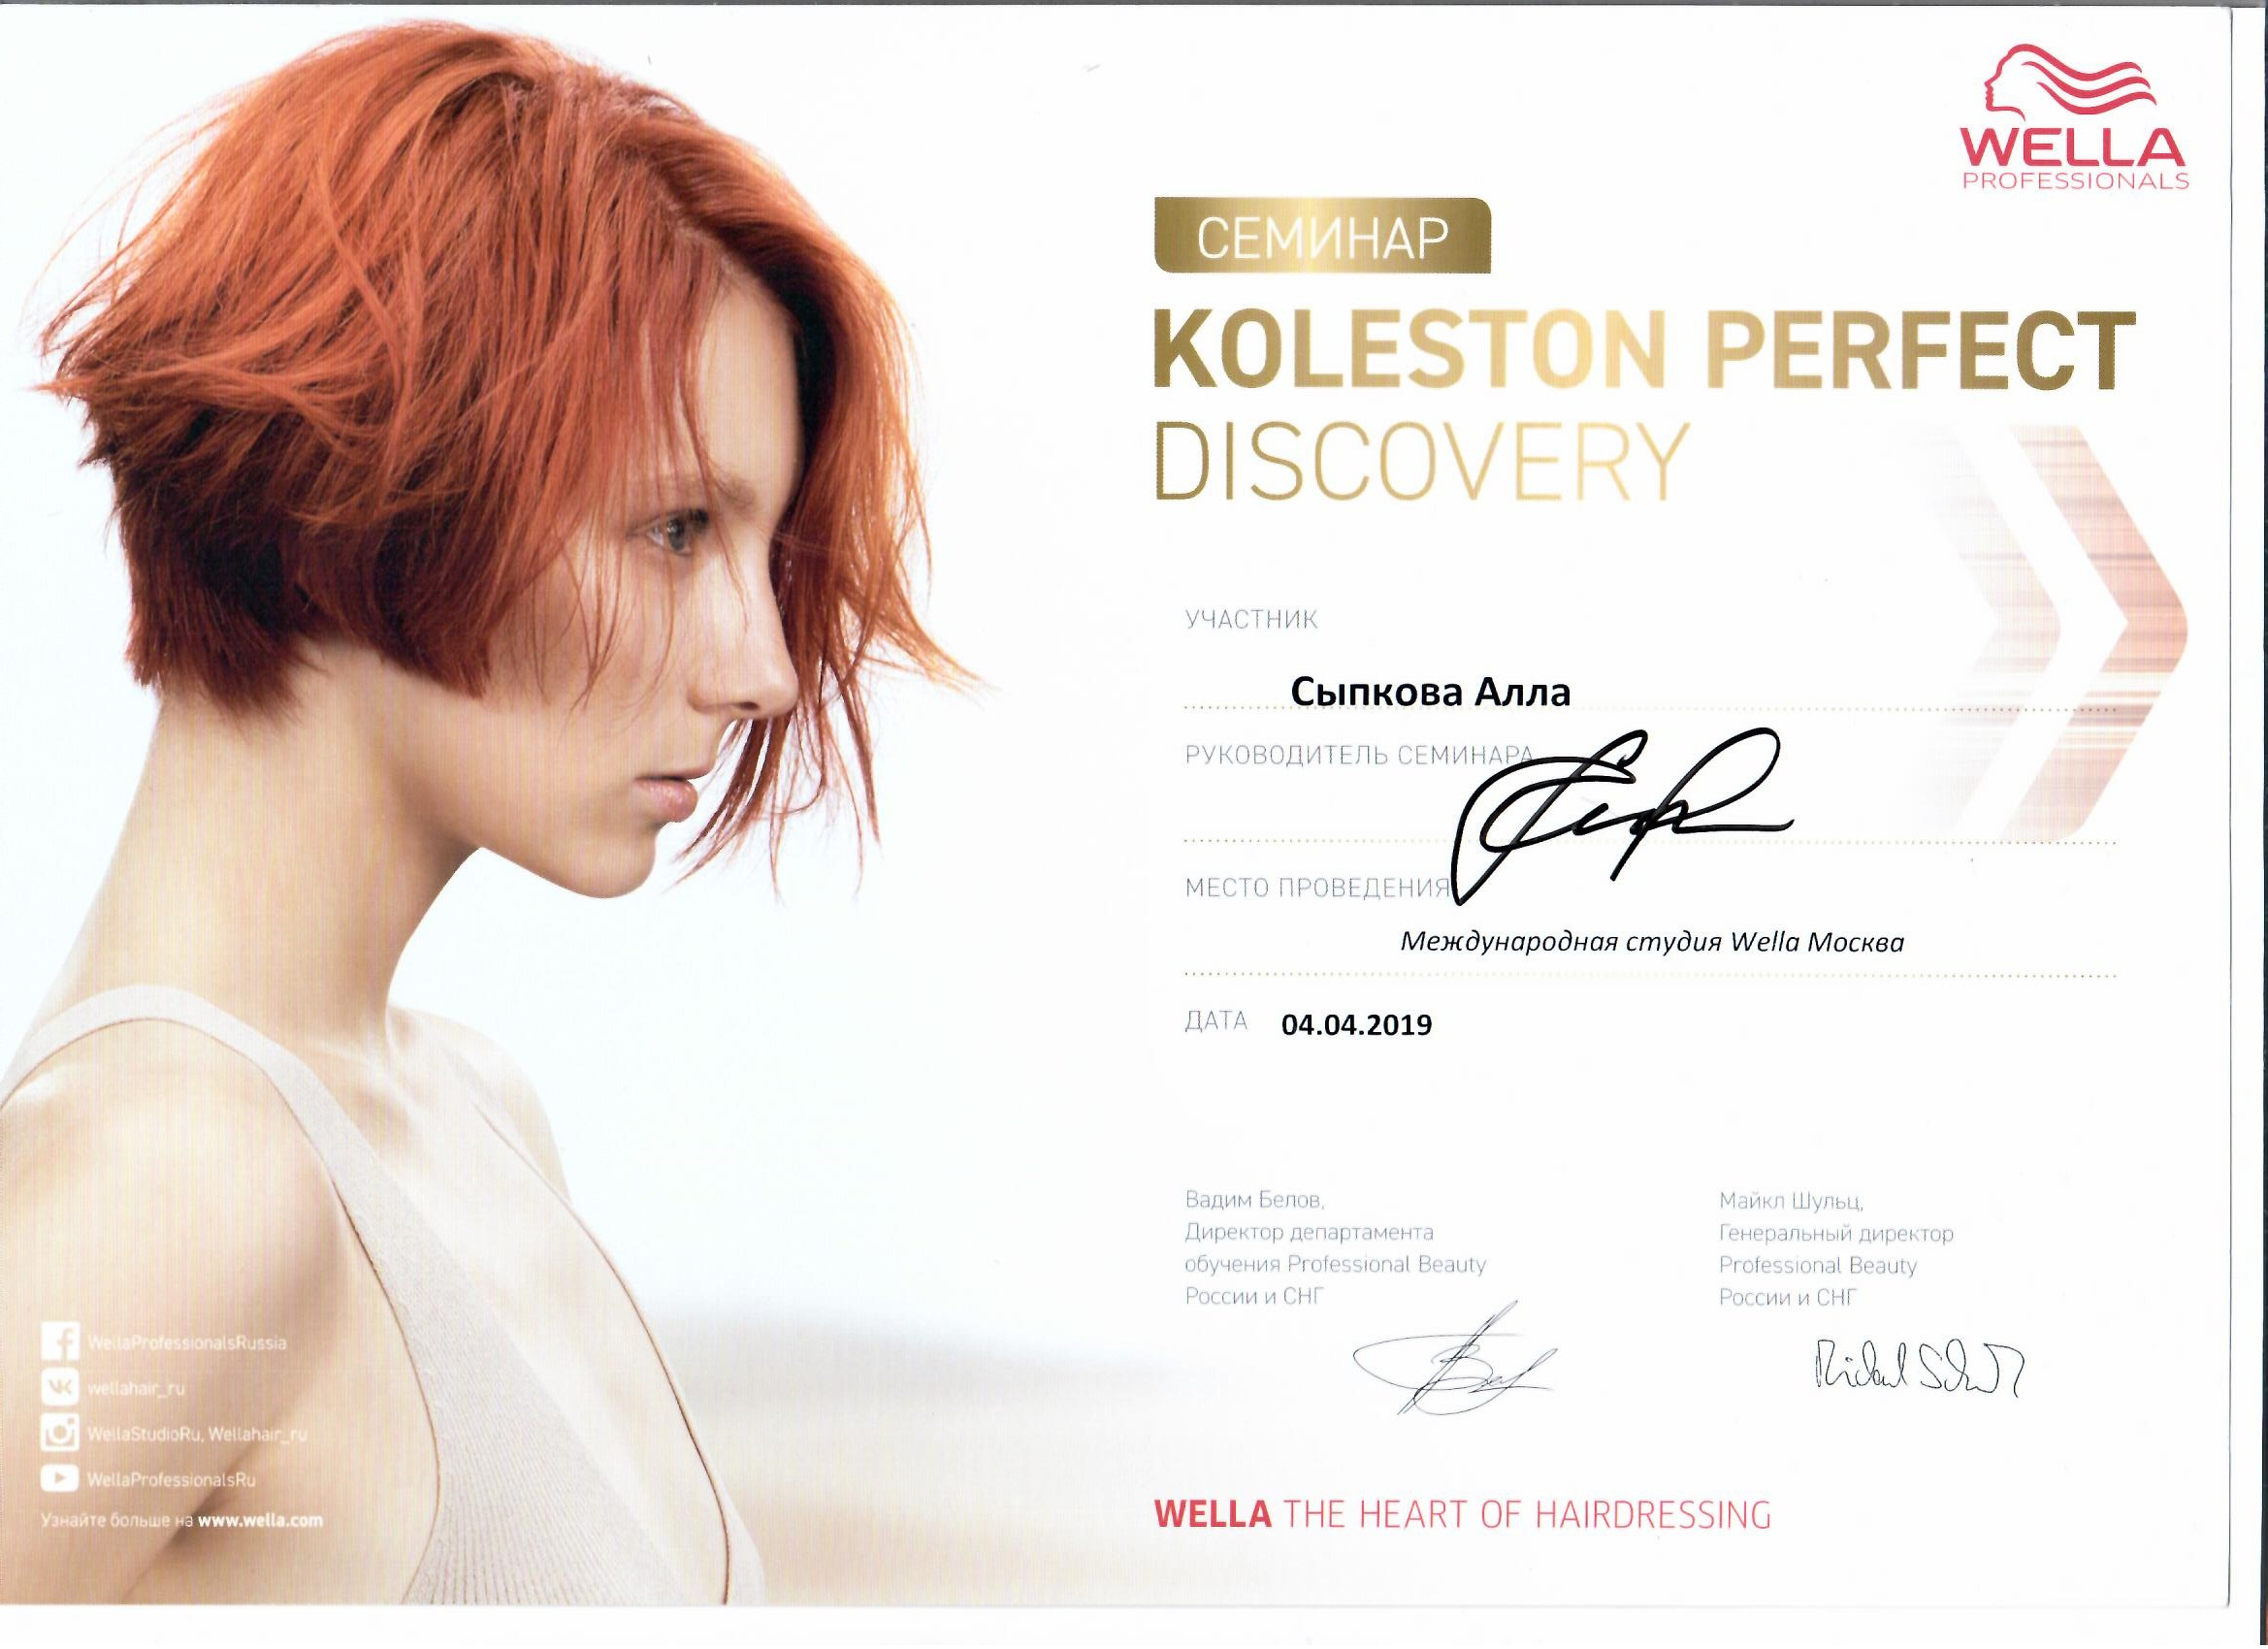 2019 koleston perfect discovery wella